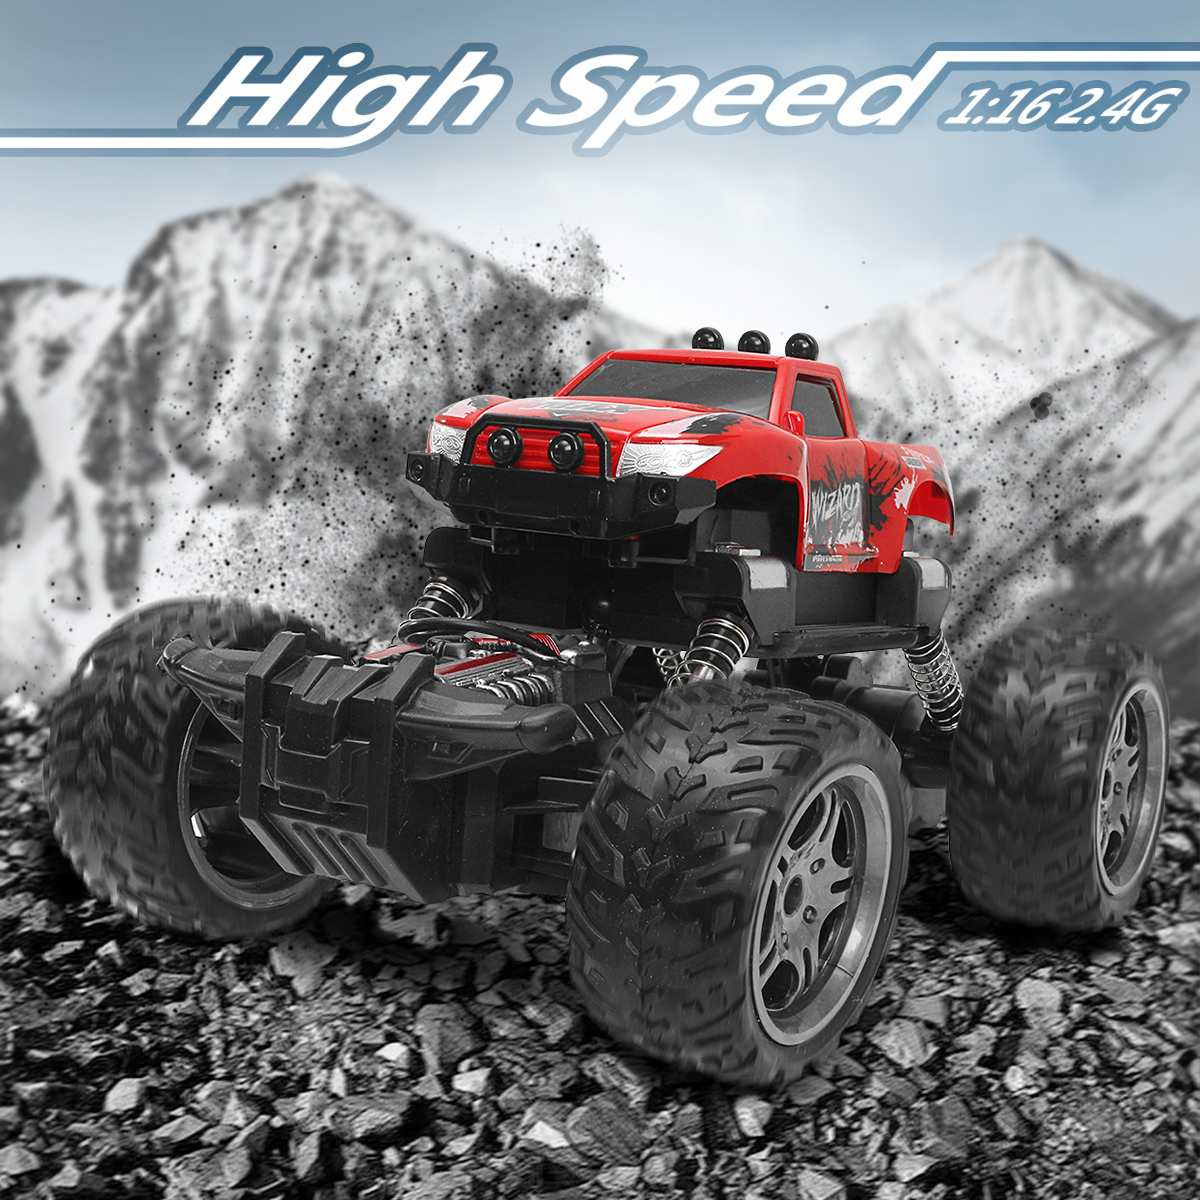 1/18 2WD Rock Crawlers Rally climbing Car High Speed Radio Fast Remote control RC RTR Racing buggy Car Off Road Vehicle Toy rc electric toy car 1 24 l333 high speed off road buggy radio remote control rtr rock rover rc toy model child best gift toy